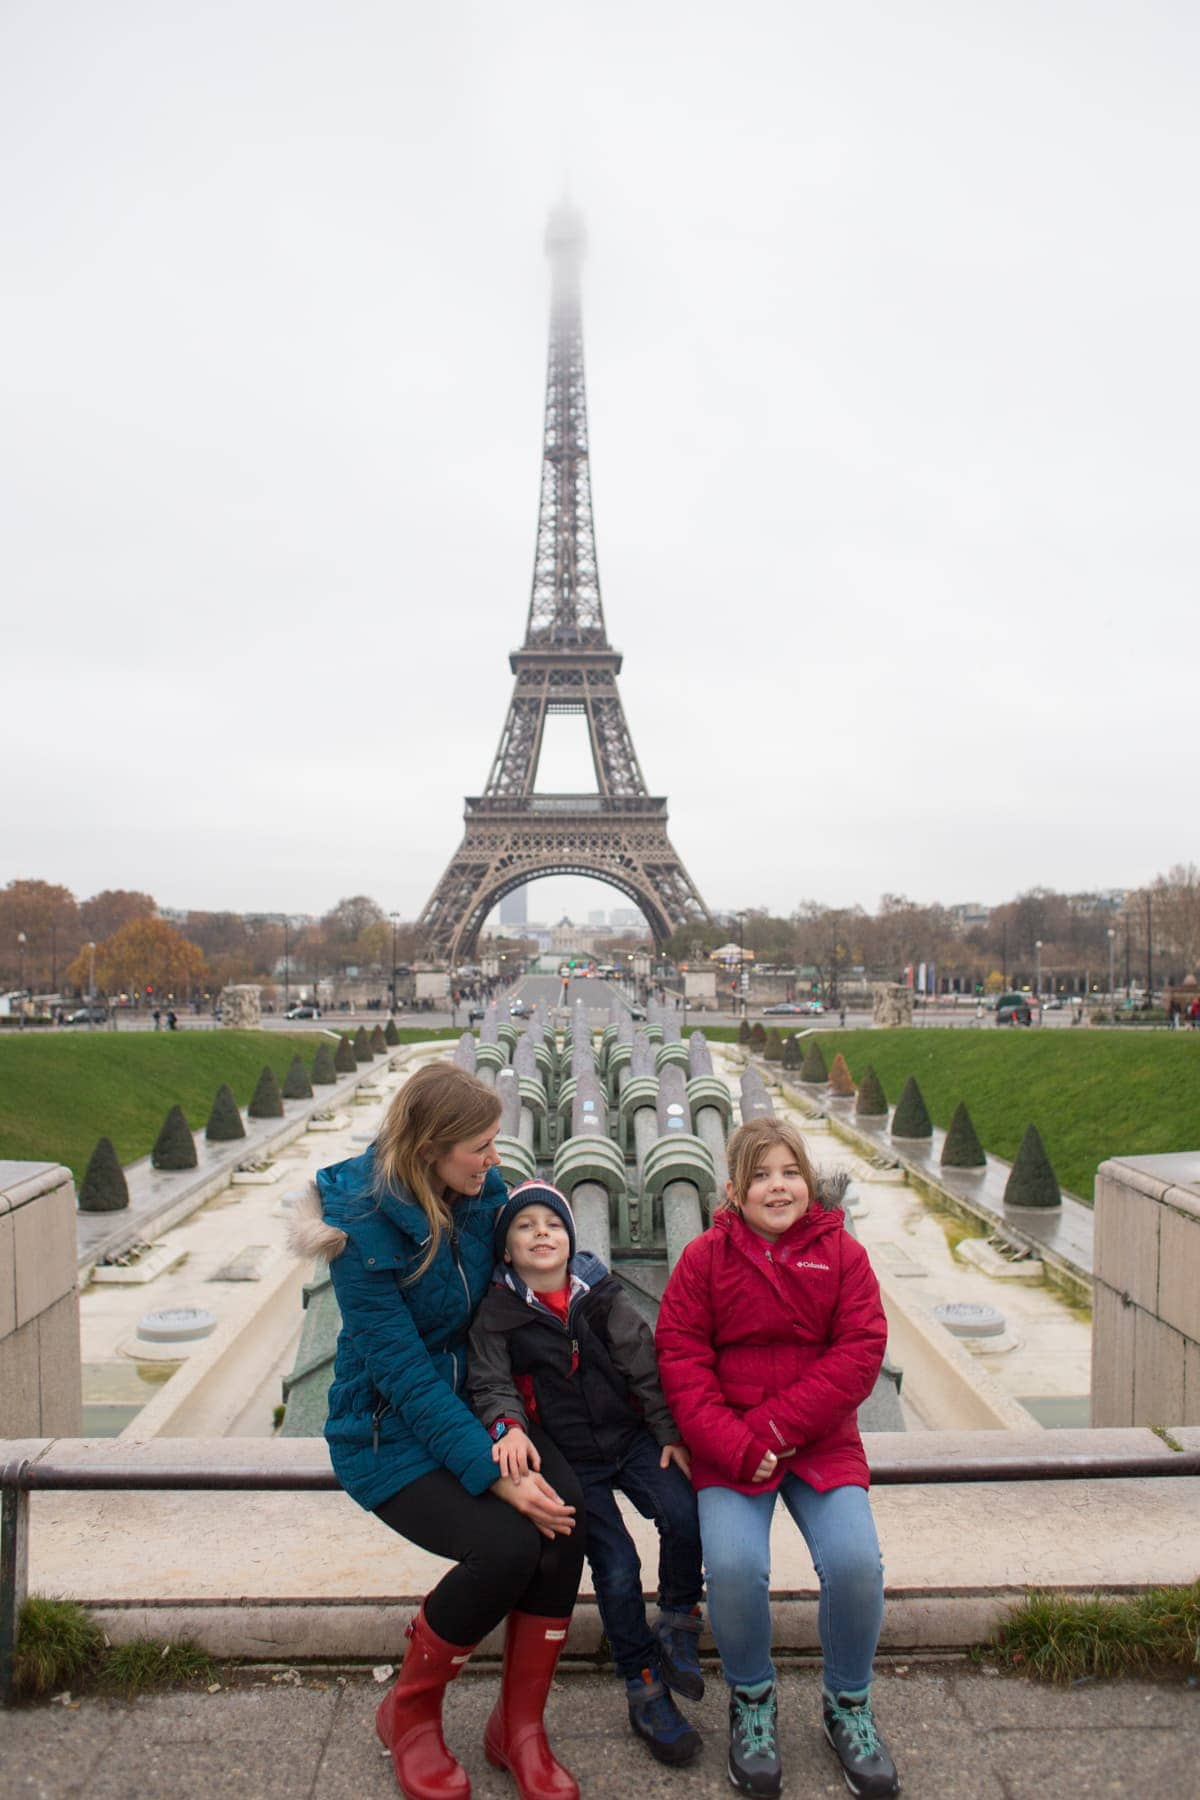 Lauren, Blake and Brooke in front of the Eiffel tower